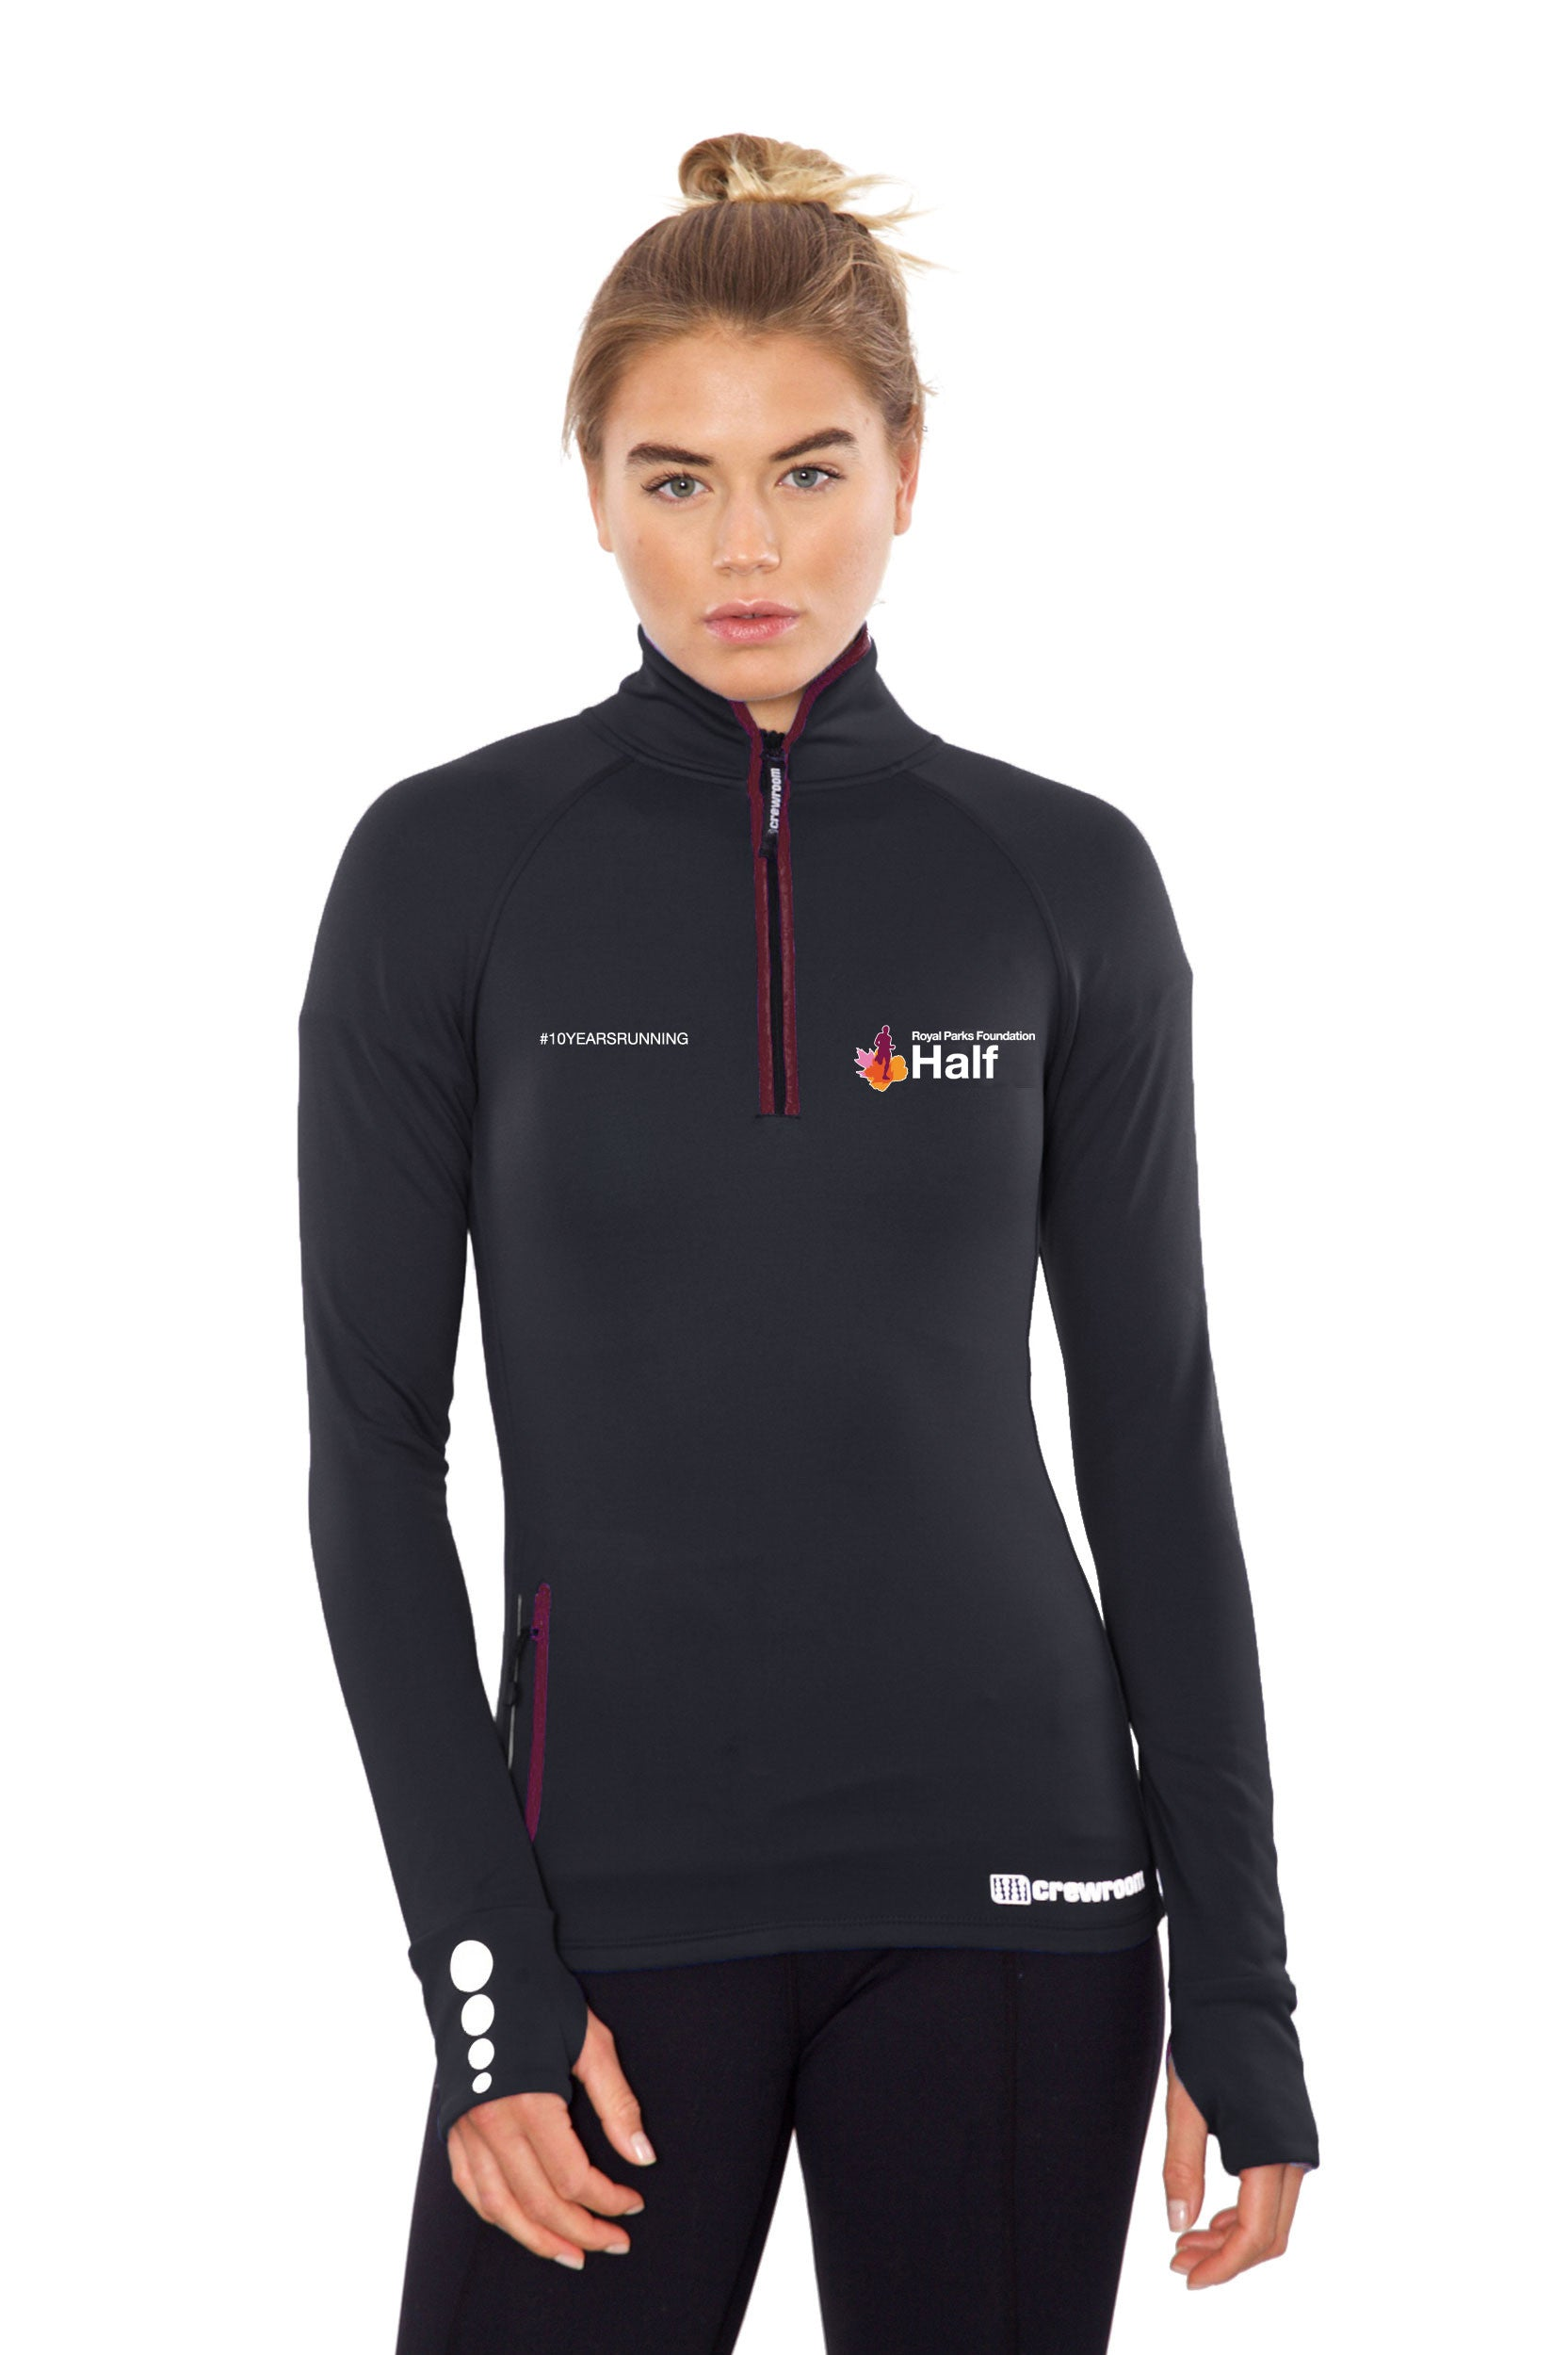 Royal Parks Half Toasty ¼ Zip - Women's